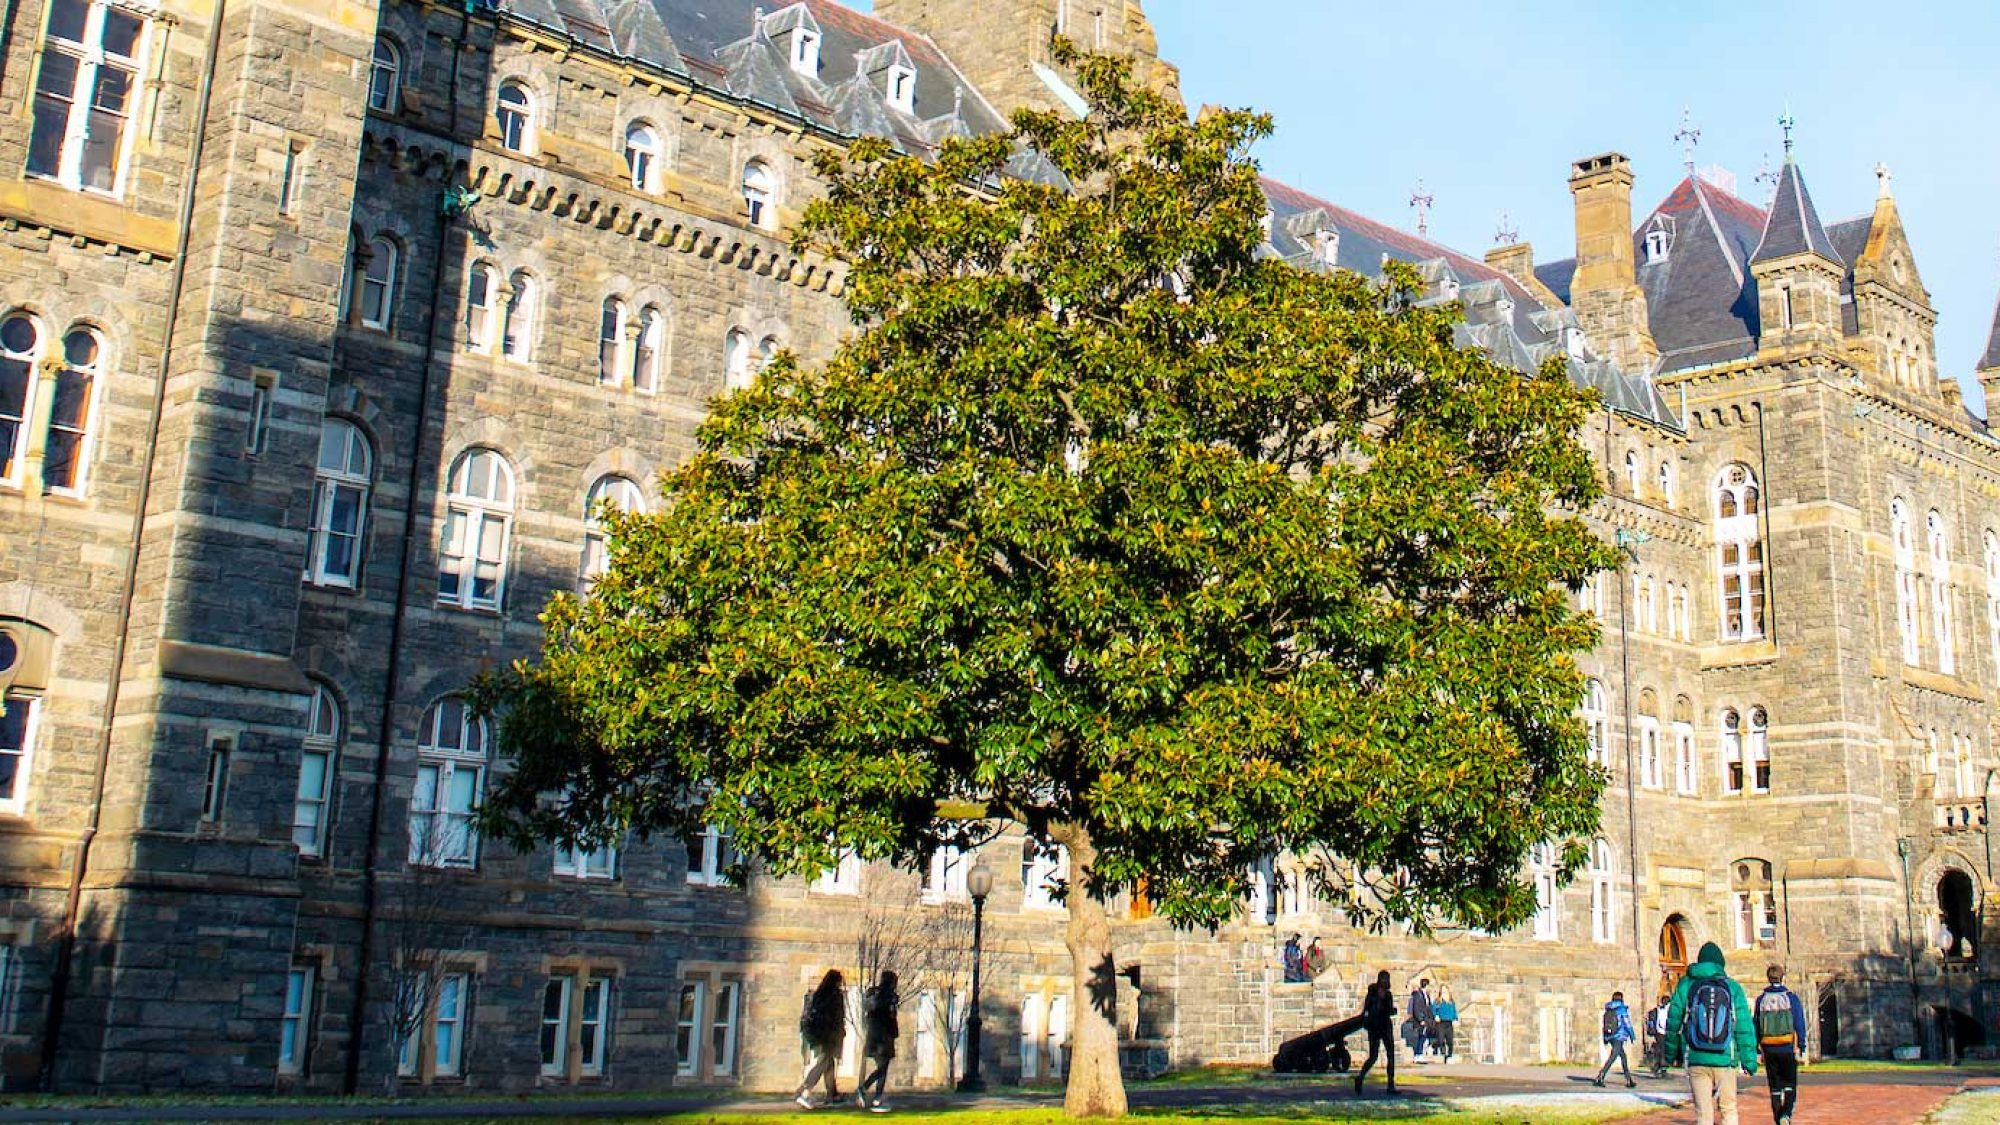 Healy Hall view from the side